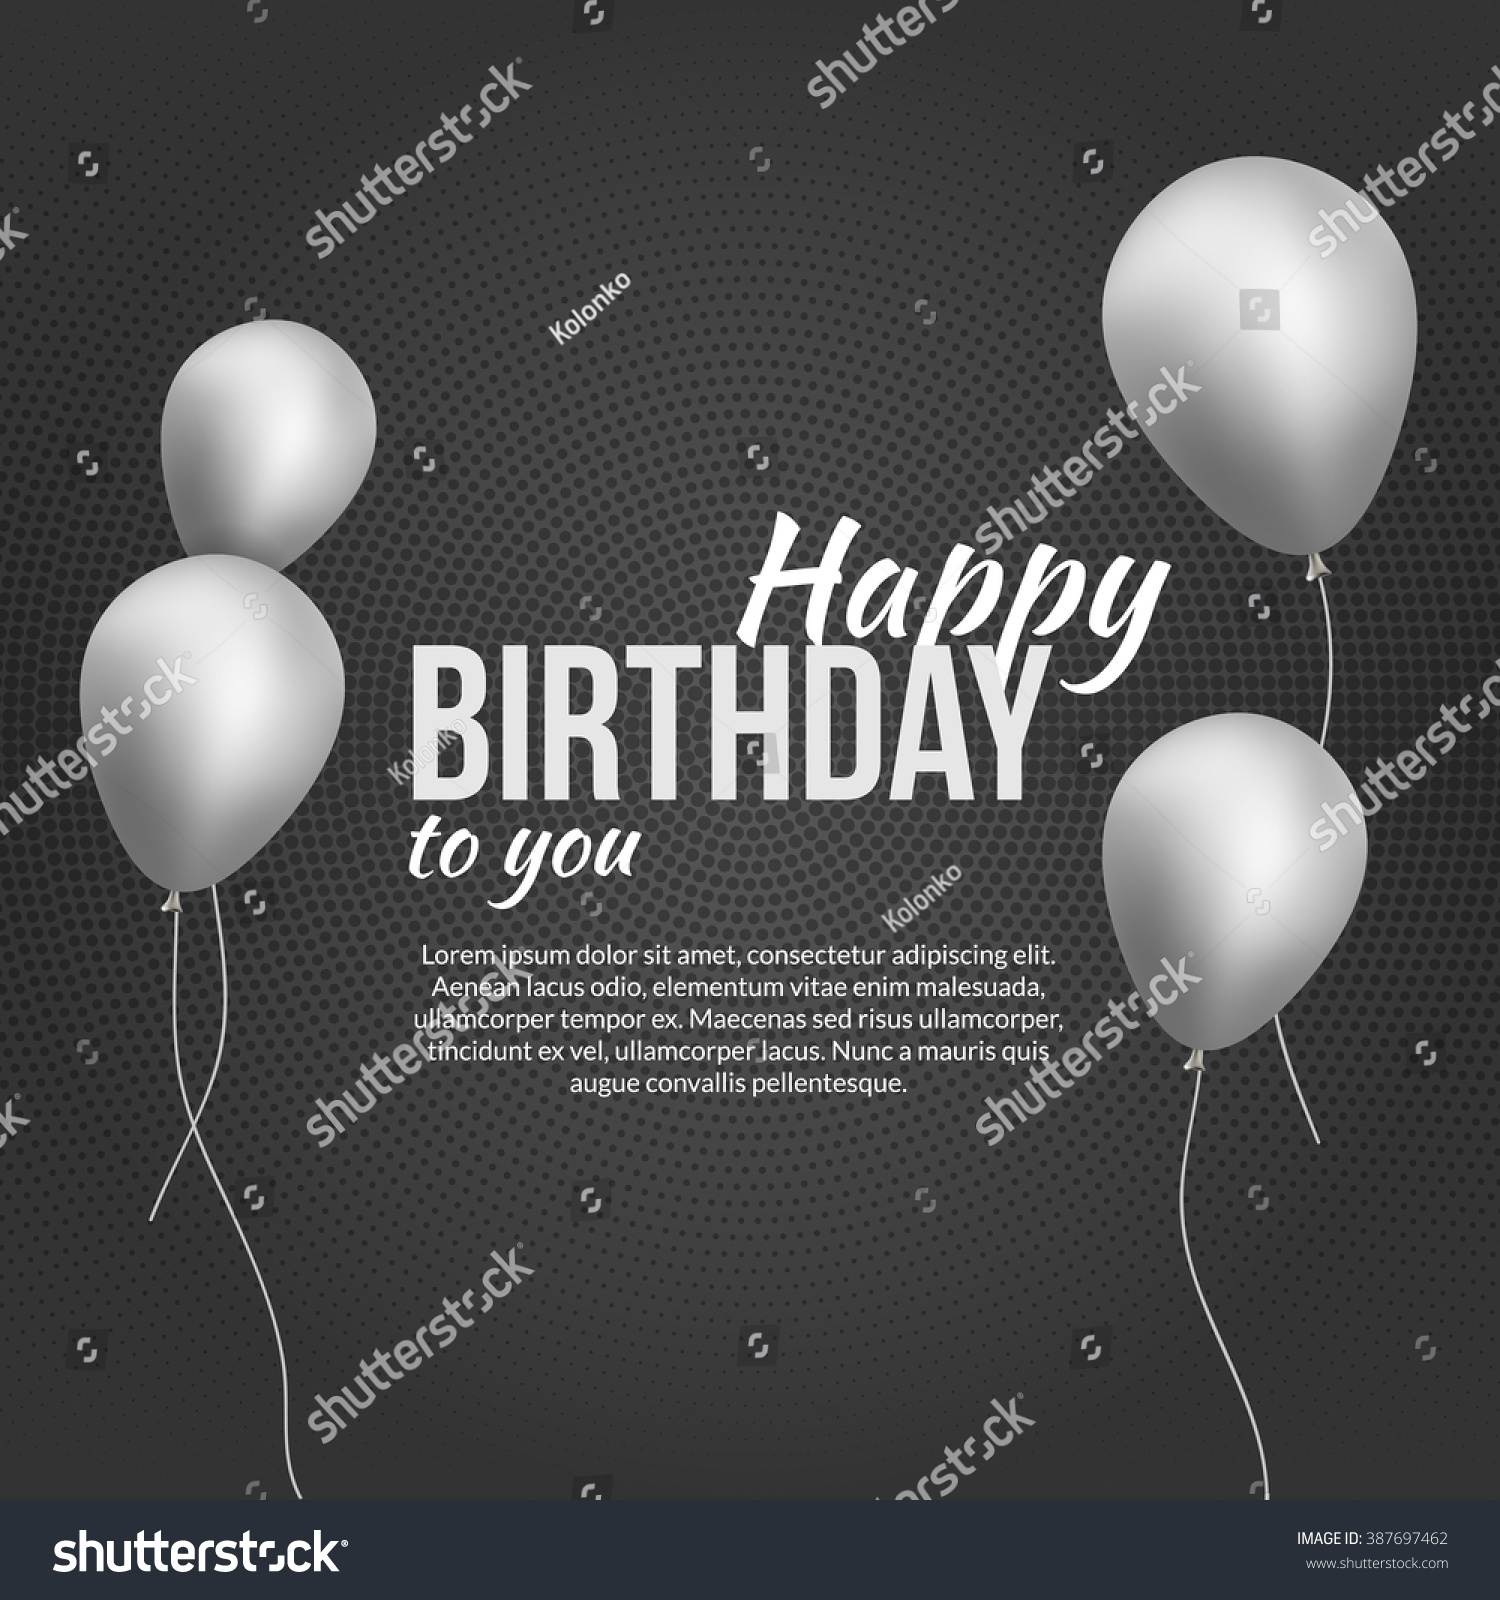 Happy Birthday Poster Background With Silver Balloons Ant Text Invitation